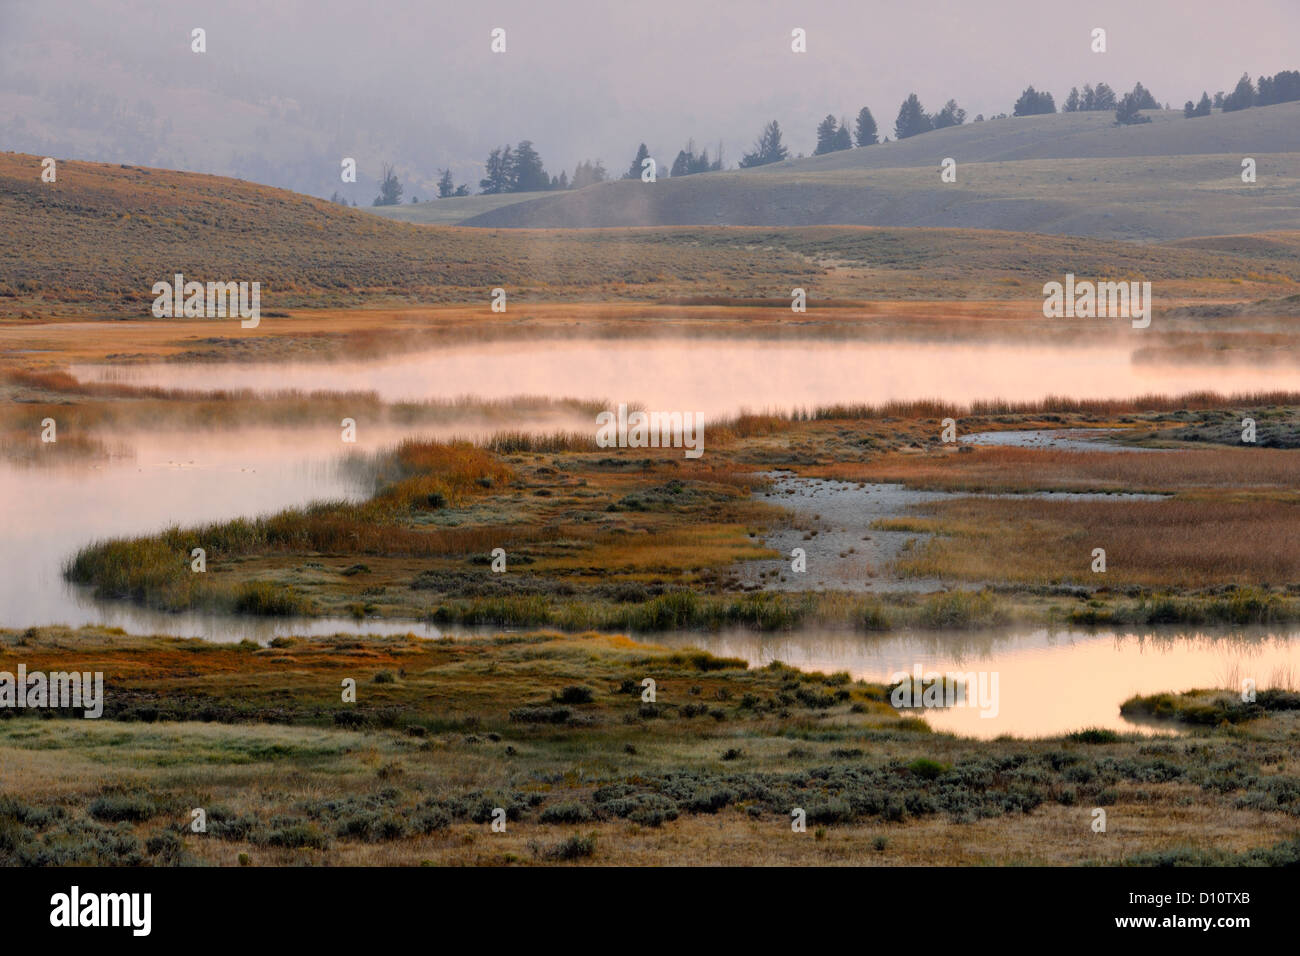 Blacktail Lakes with morning mists, Yellowstone NP, Wyoming, USA - Stock Image